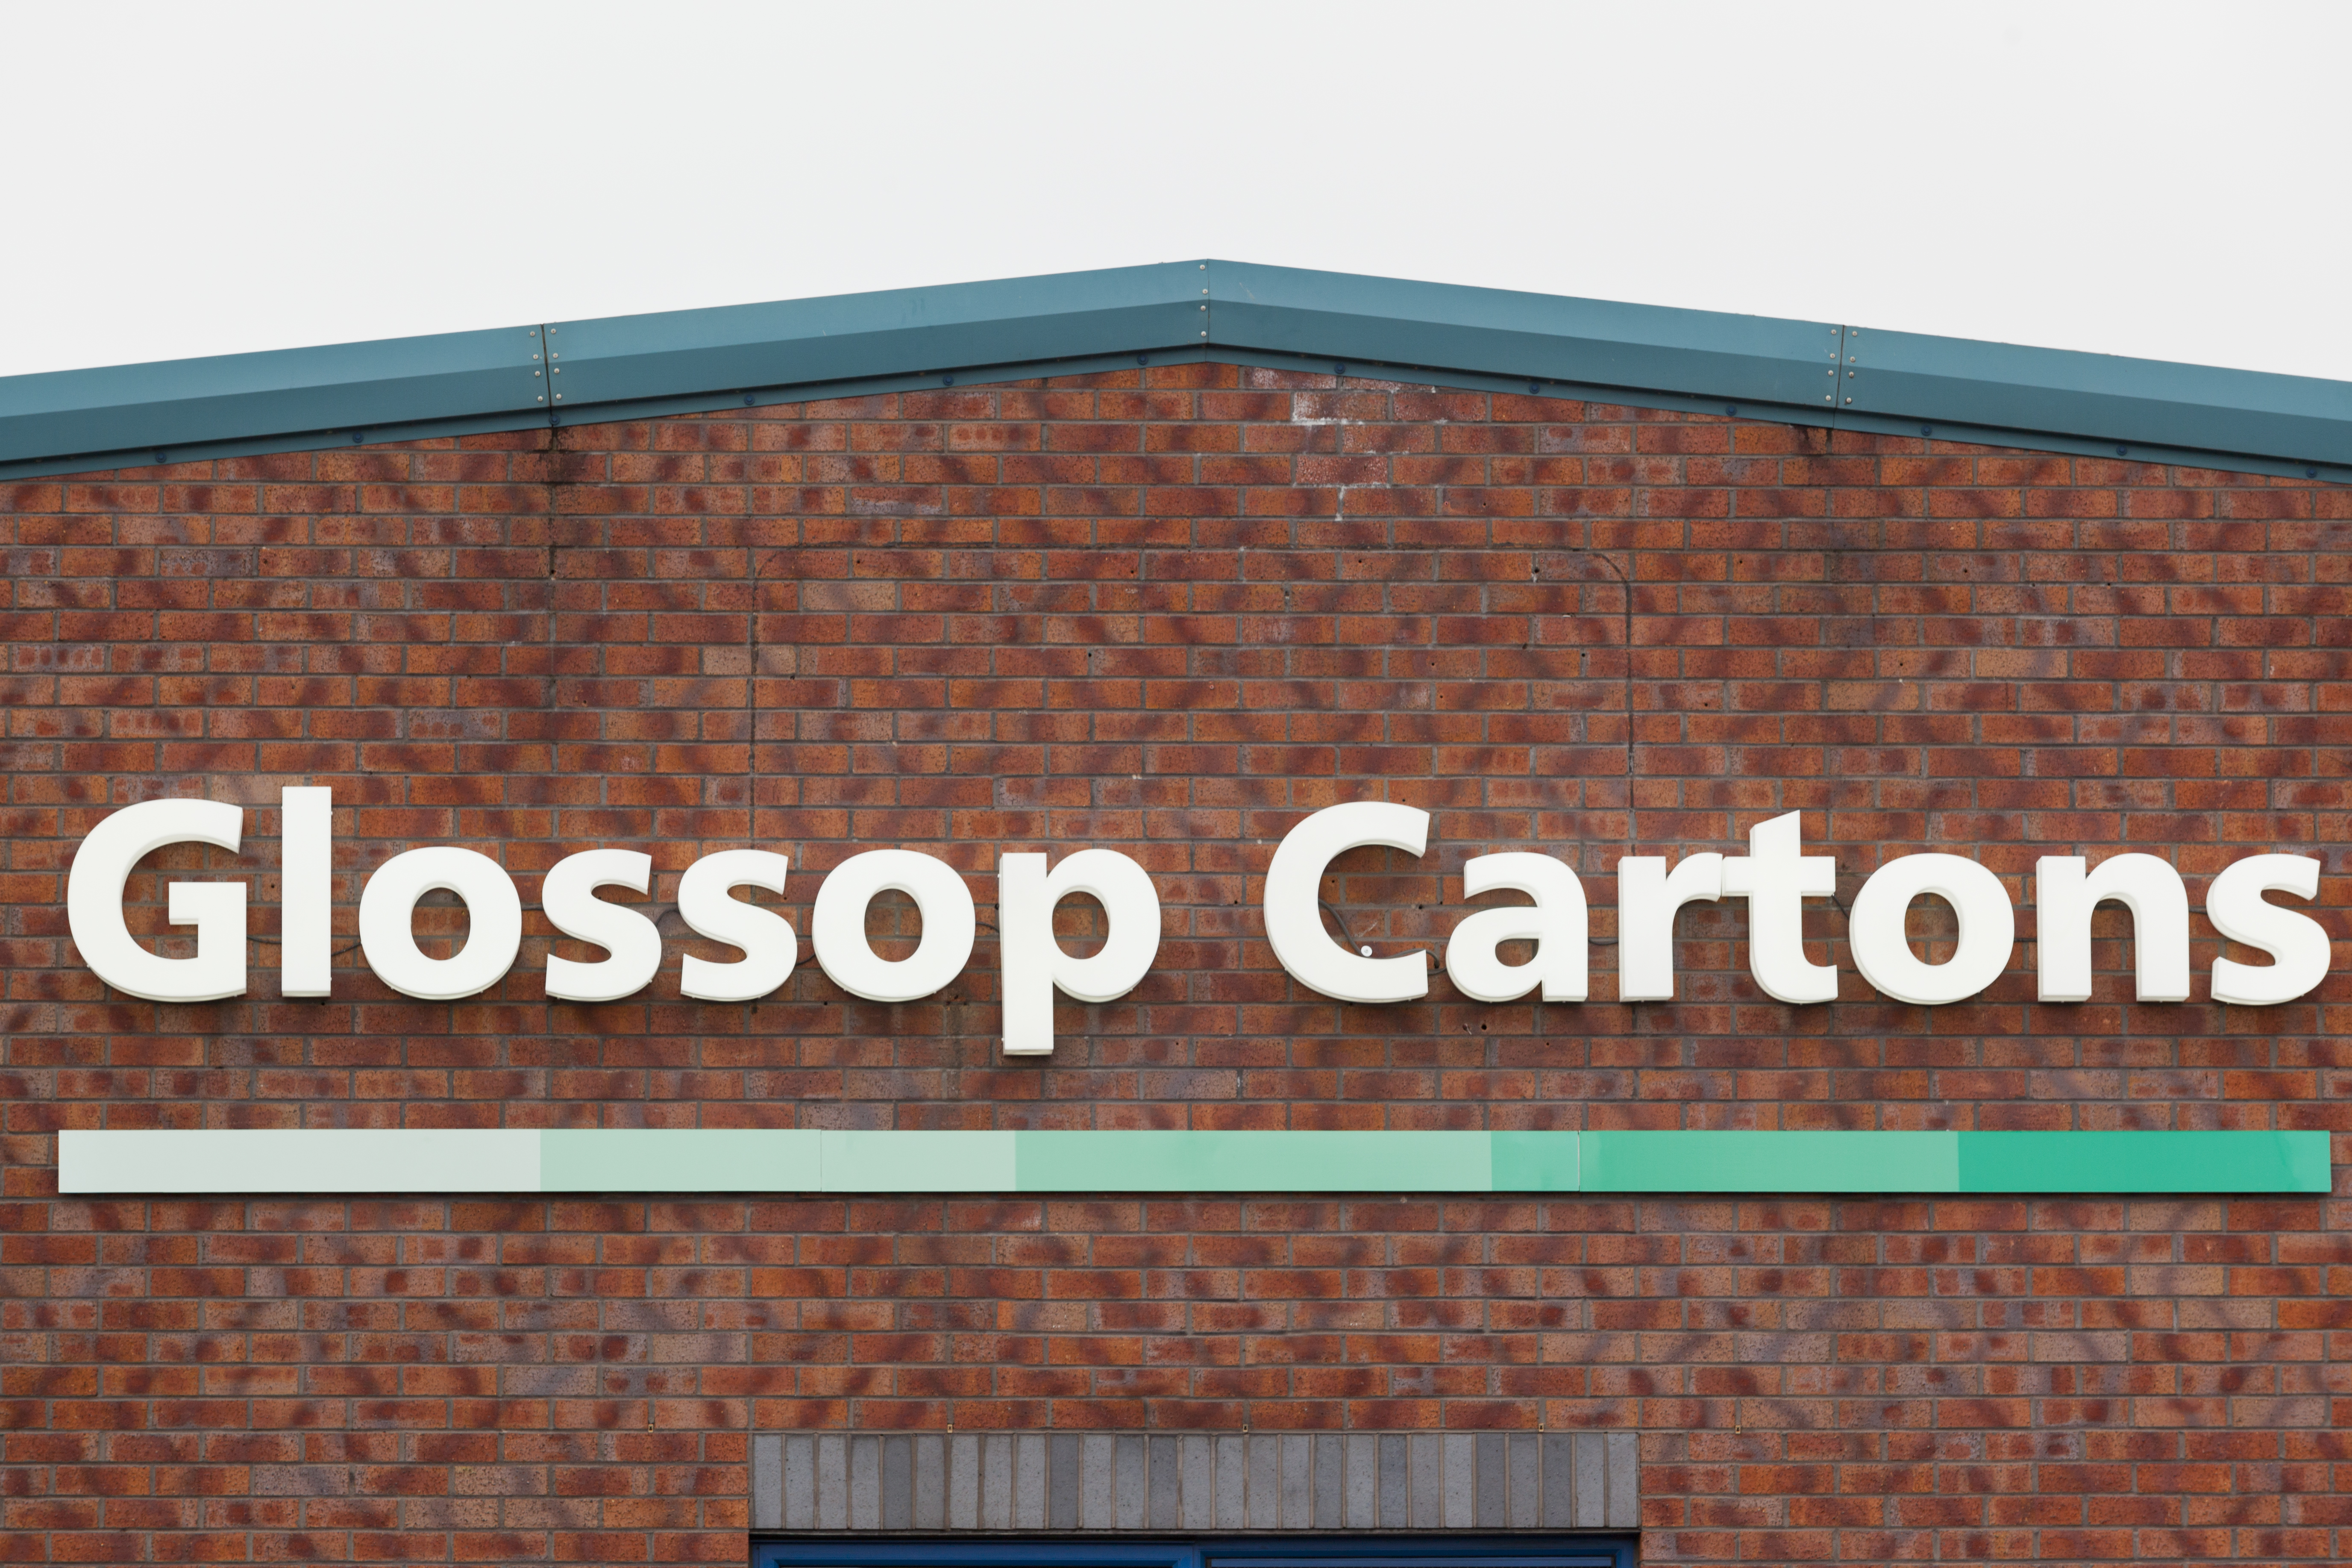 50% expansion for Glossop Cartons